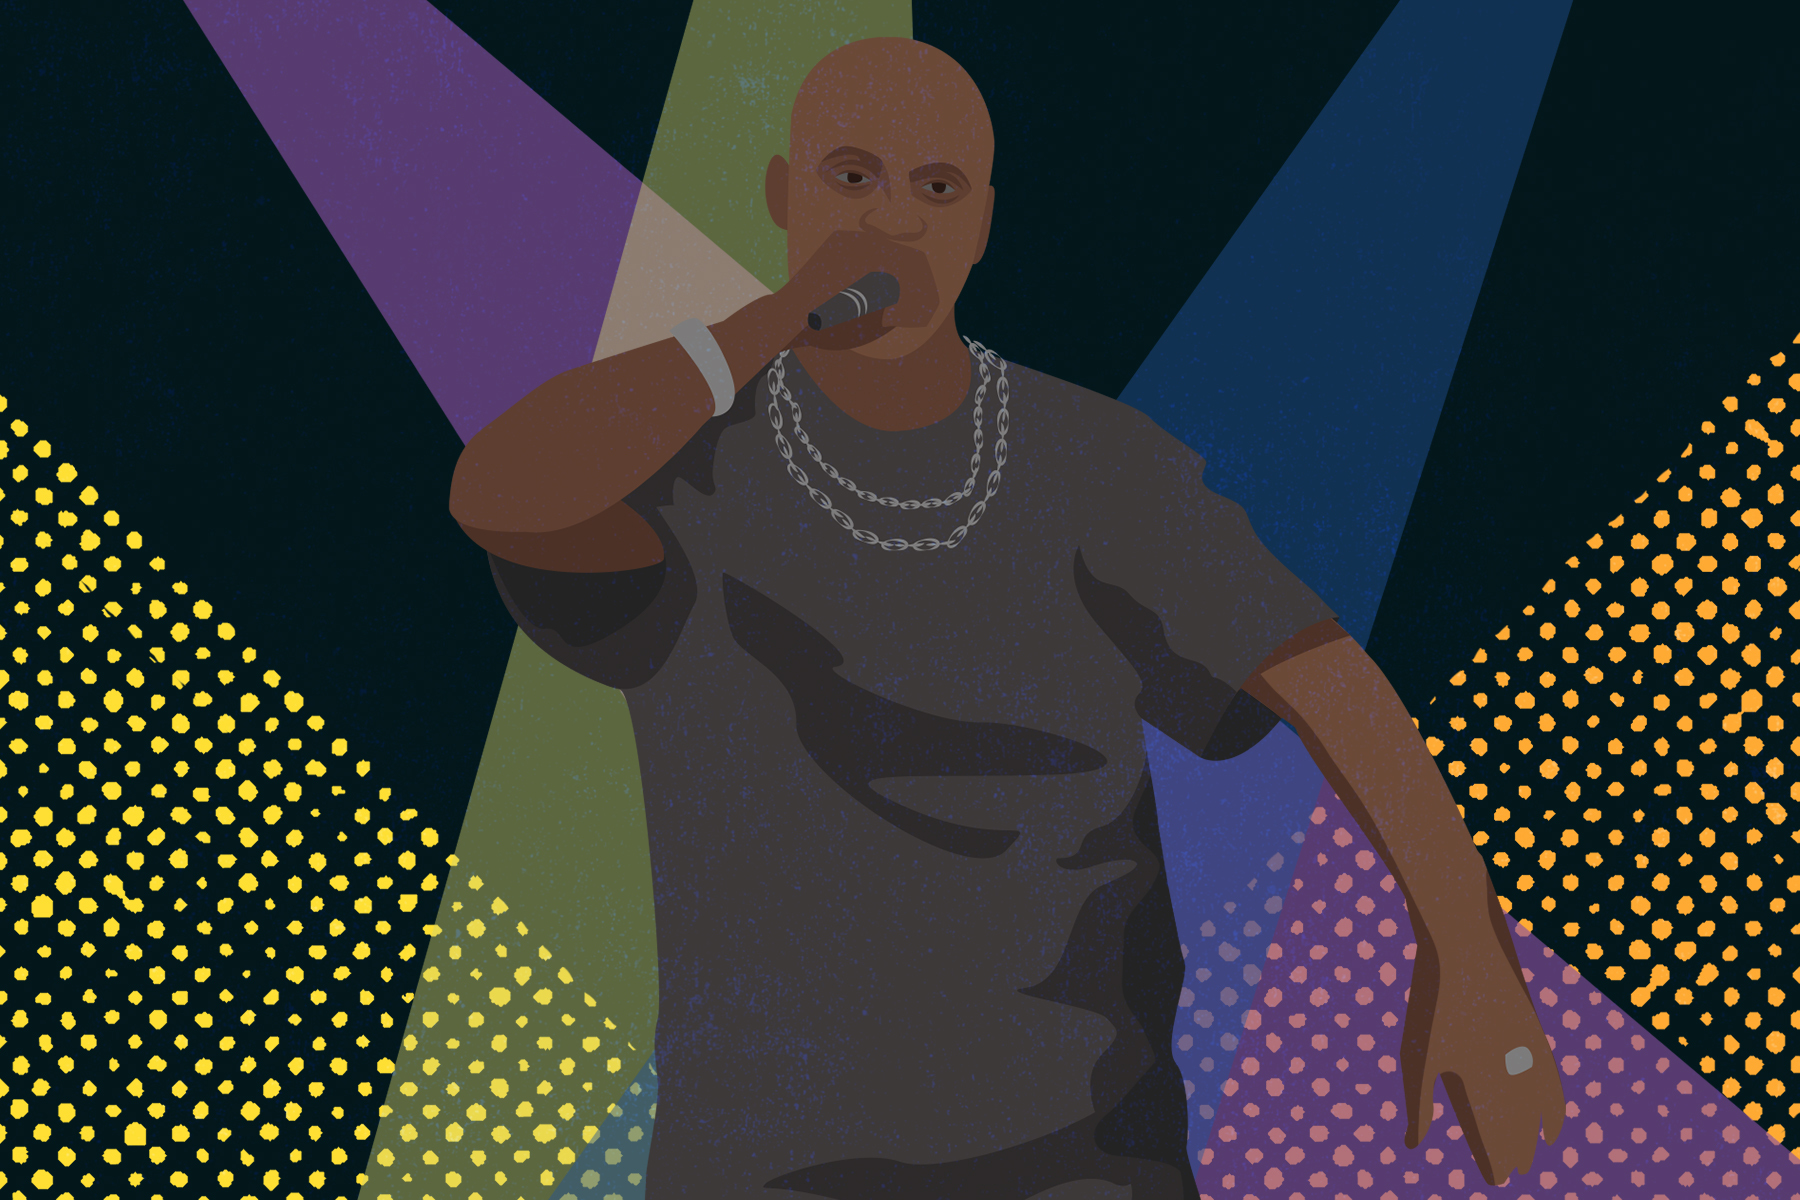 An illustration of the American rapper DMX.